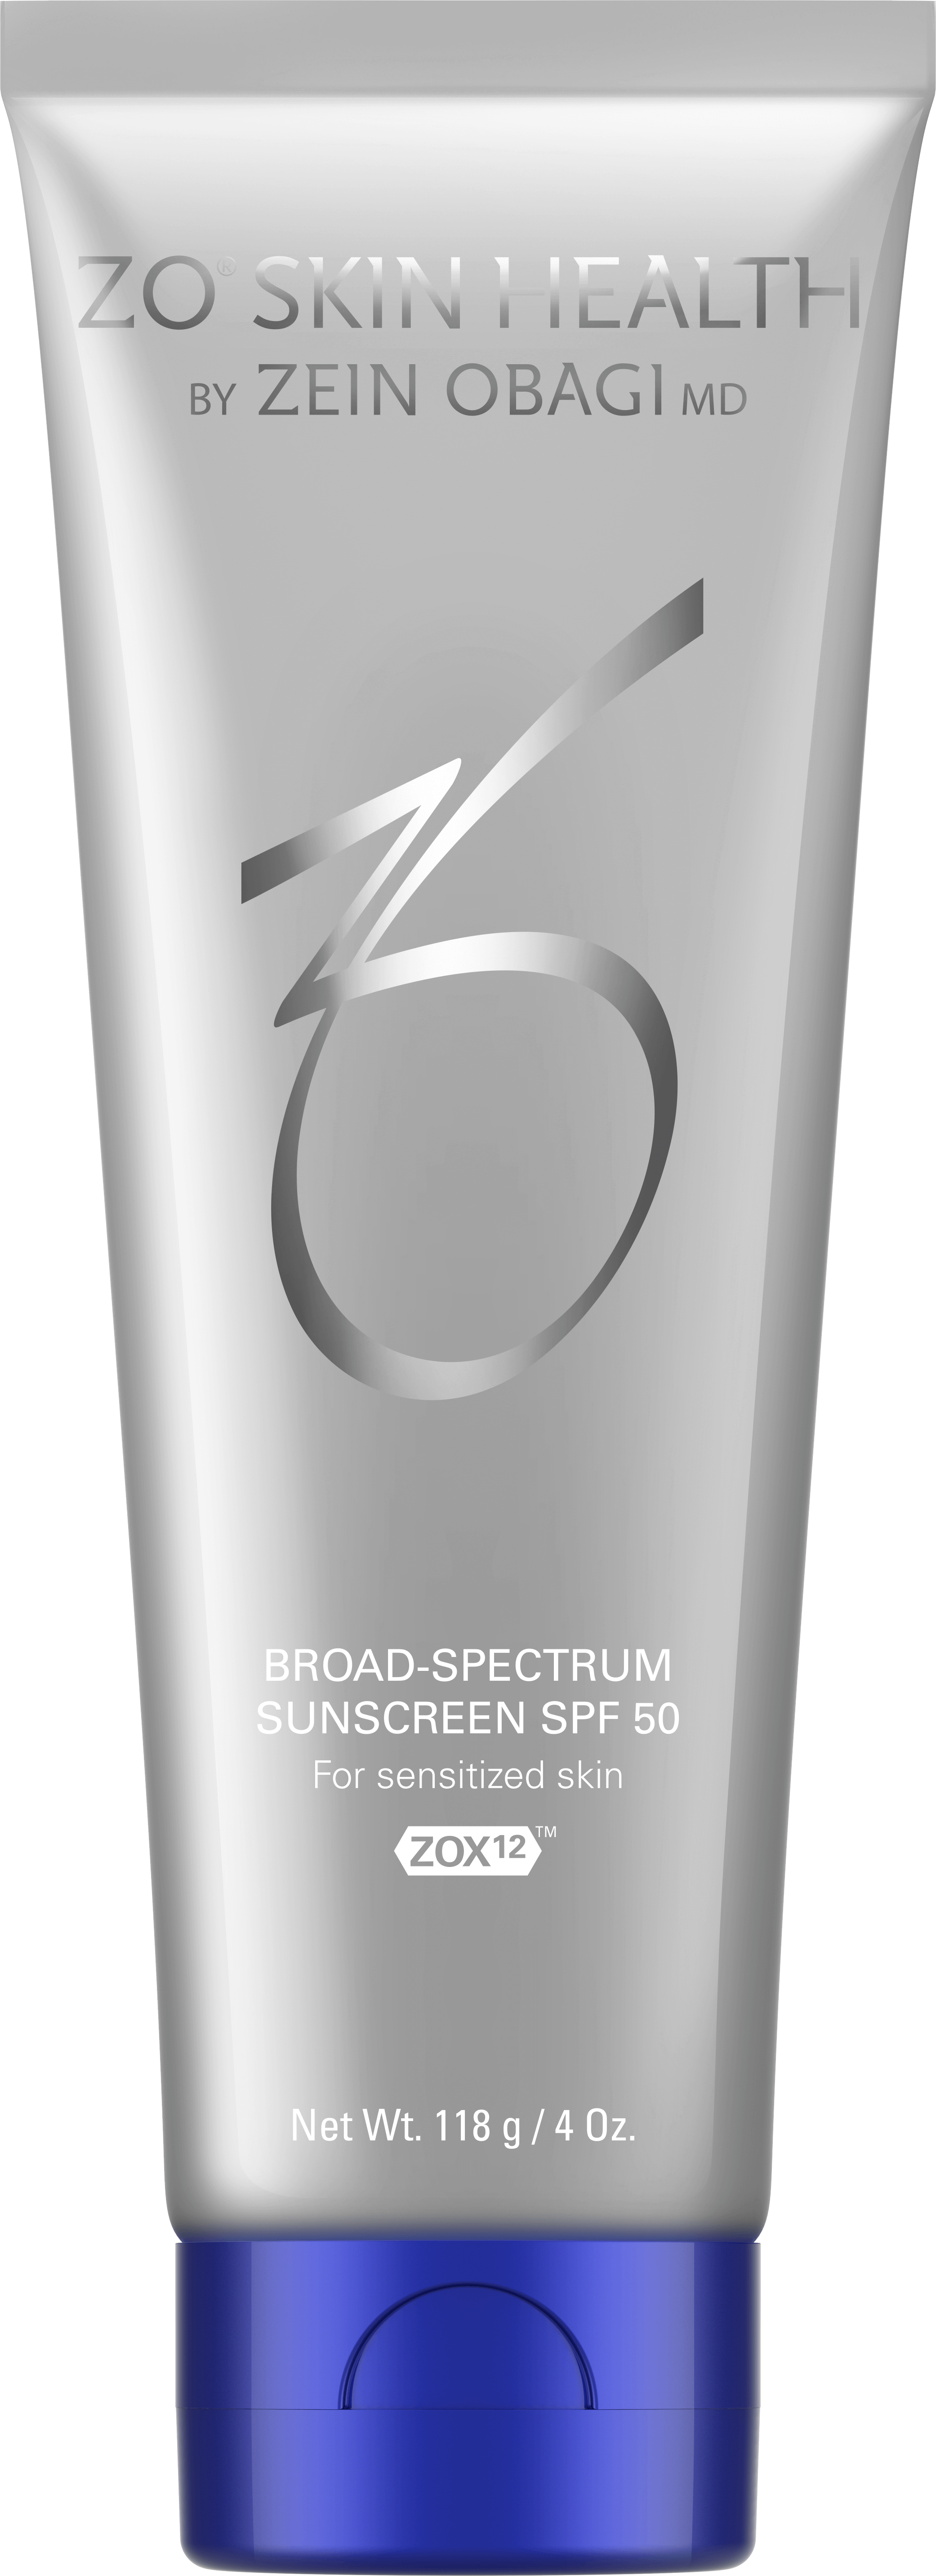 Zo Skin Health - Broad Spectrum SPF 50 Sunscreen